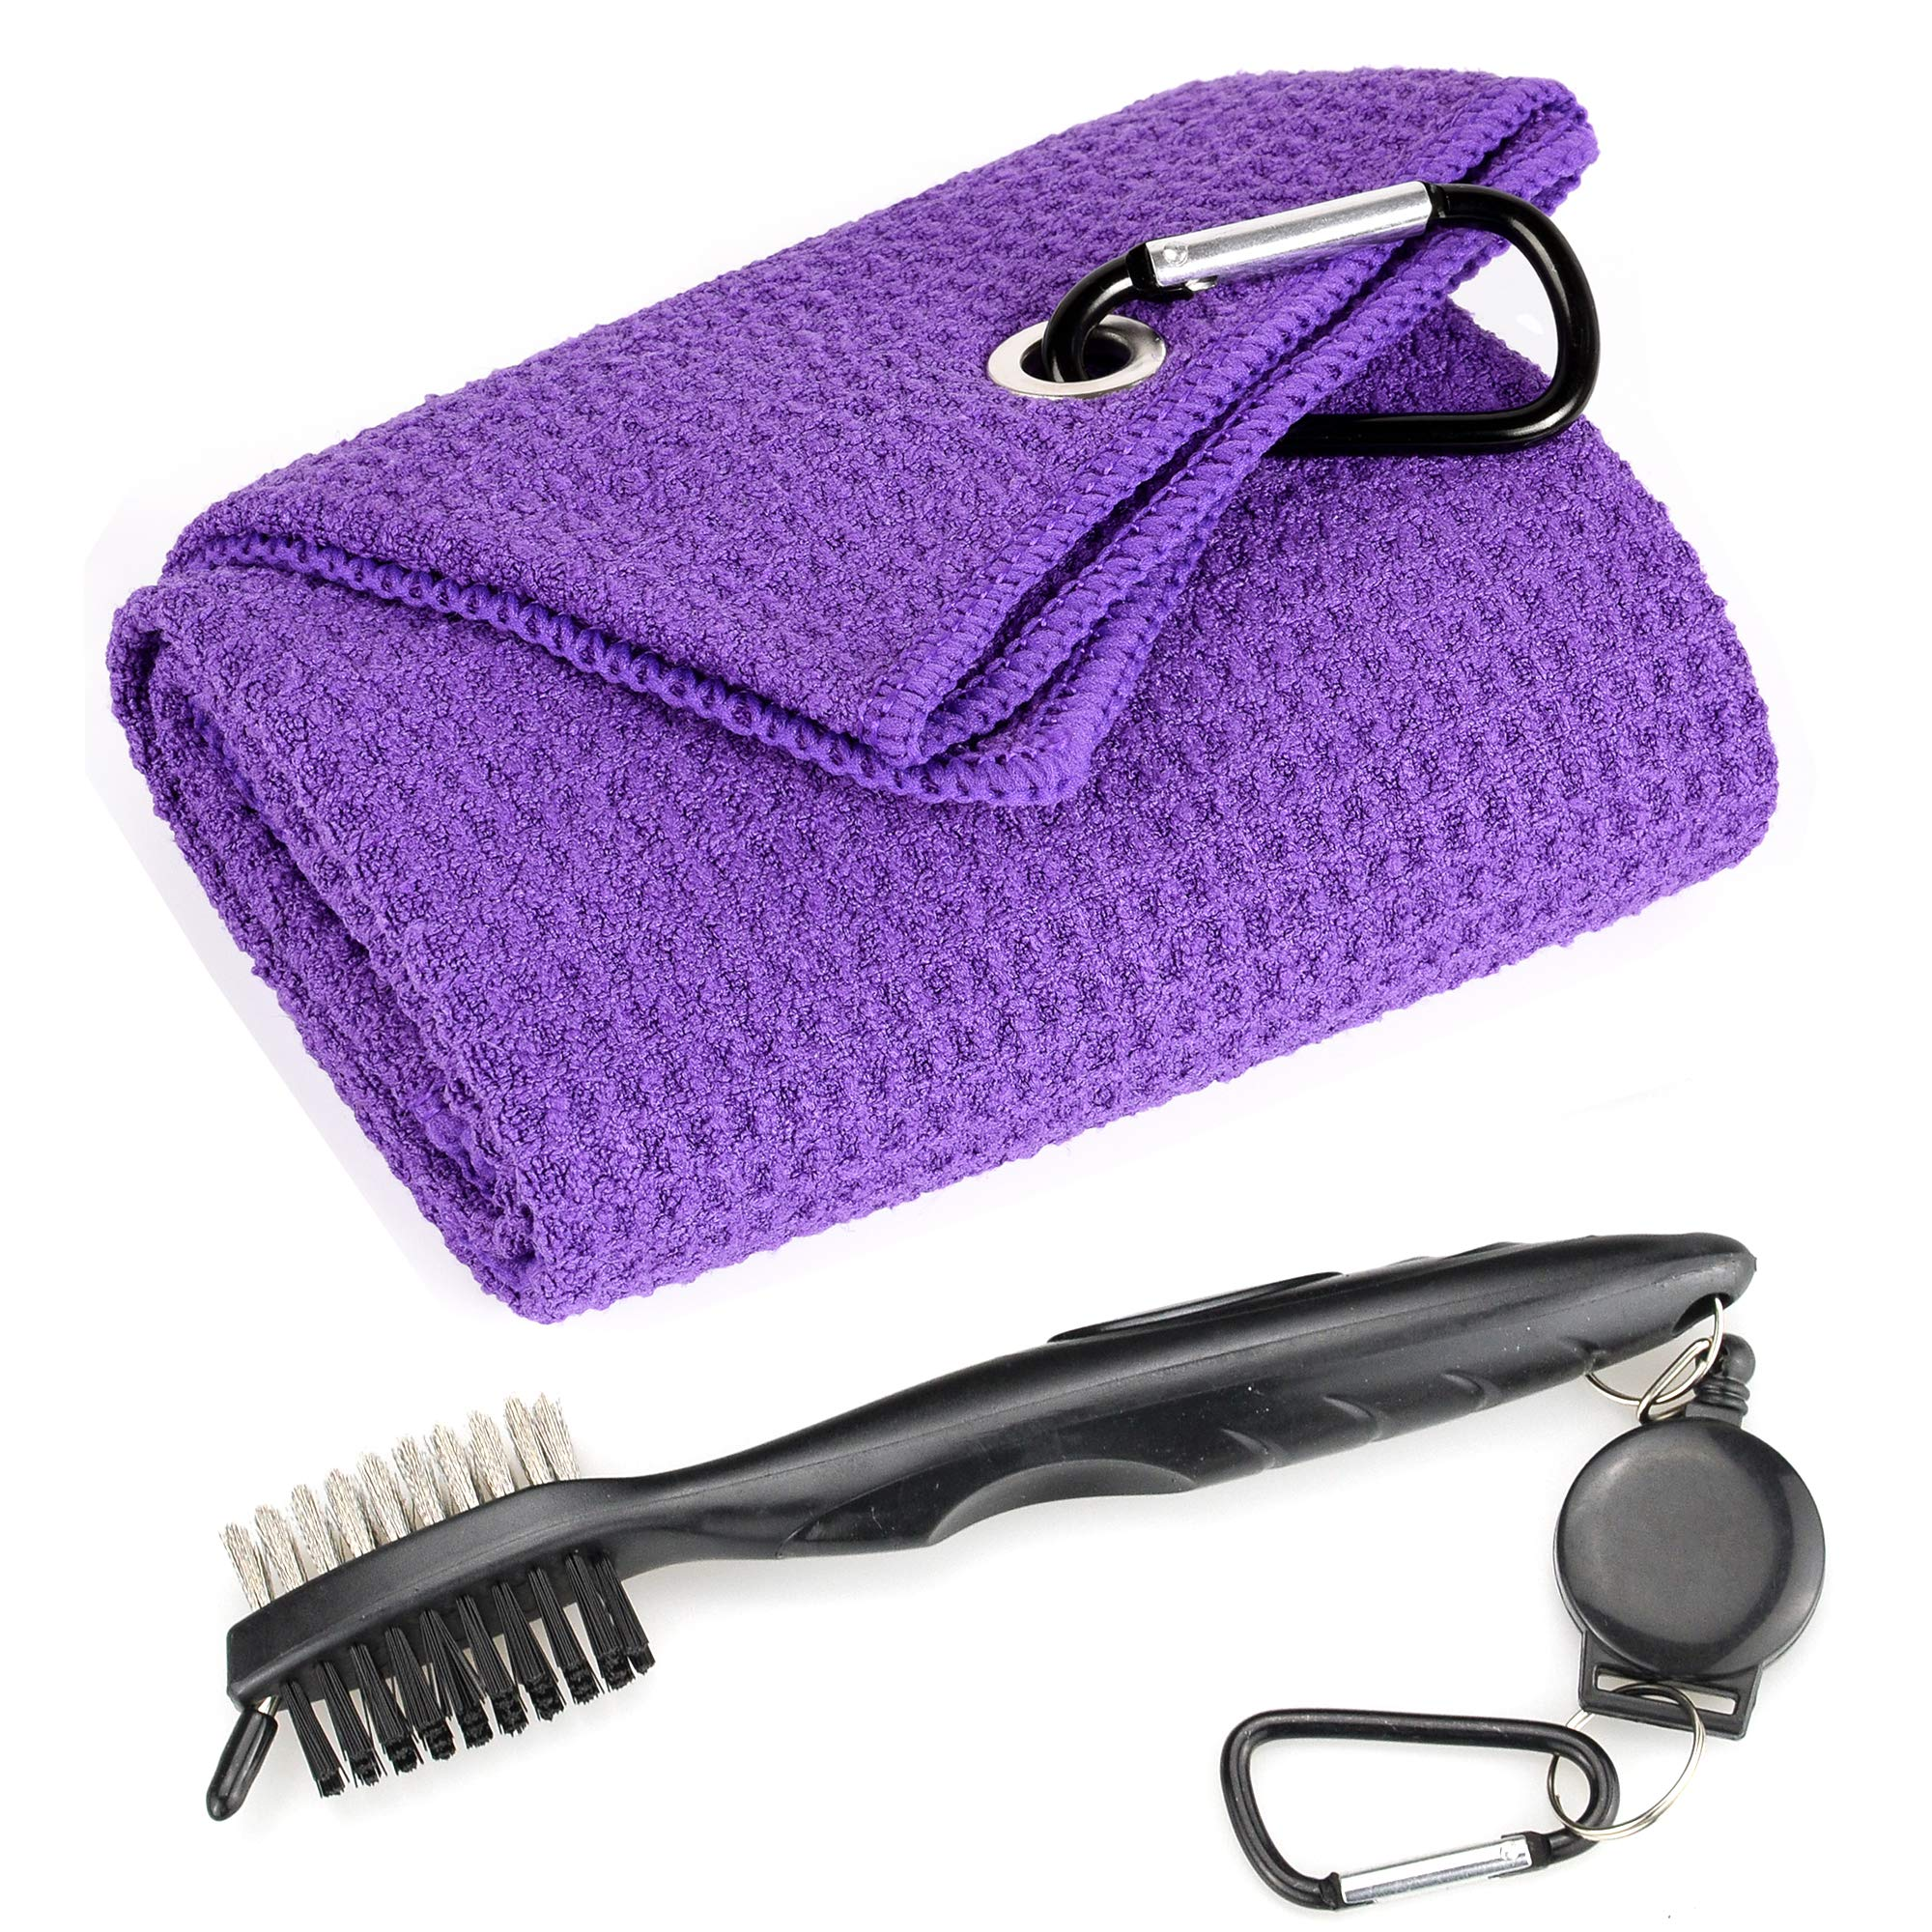 Mile High Life Microfiber Waffle Pattern Tri-fold Golf Towel | Brush Tool Kit with Club Groove Cleaner, Retractable Extension Cord and Clip (Purple Towel+Black Brush) by Mile High Life